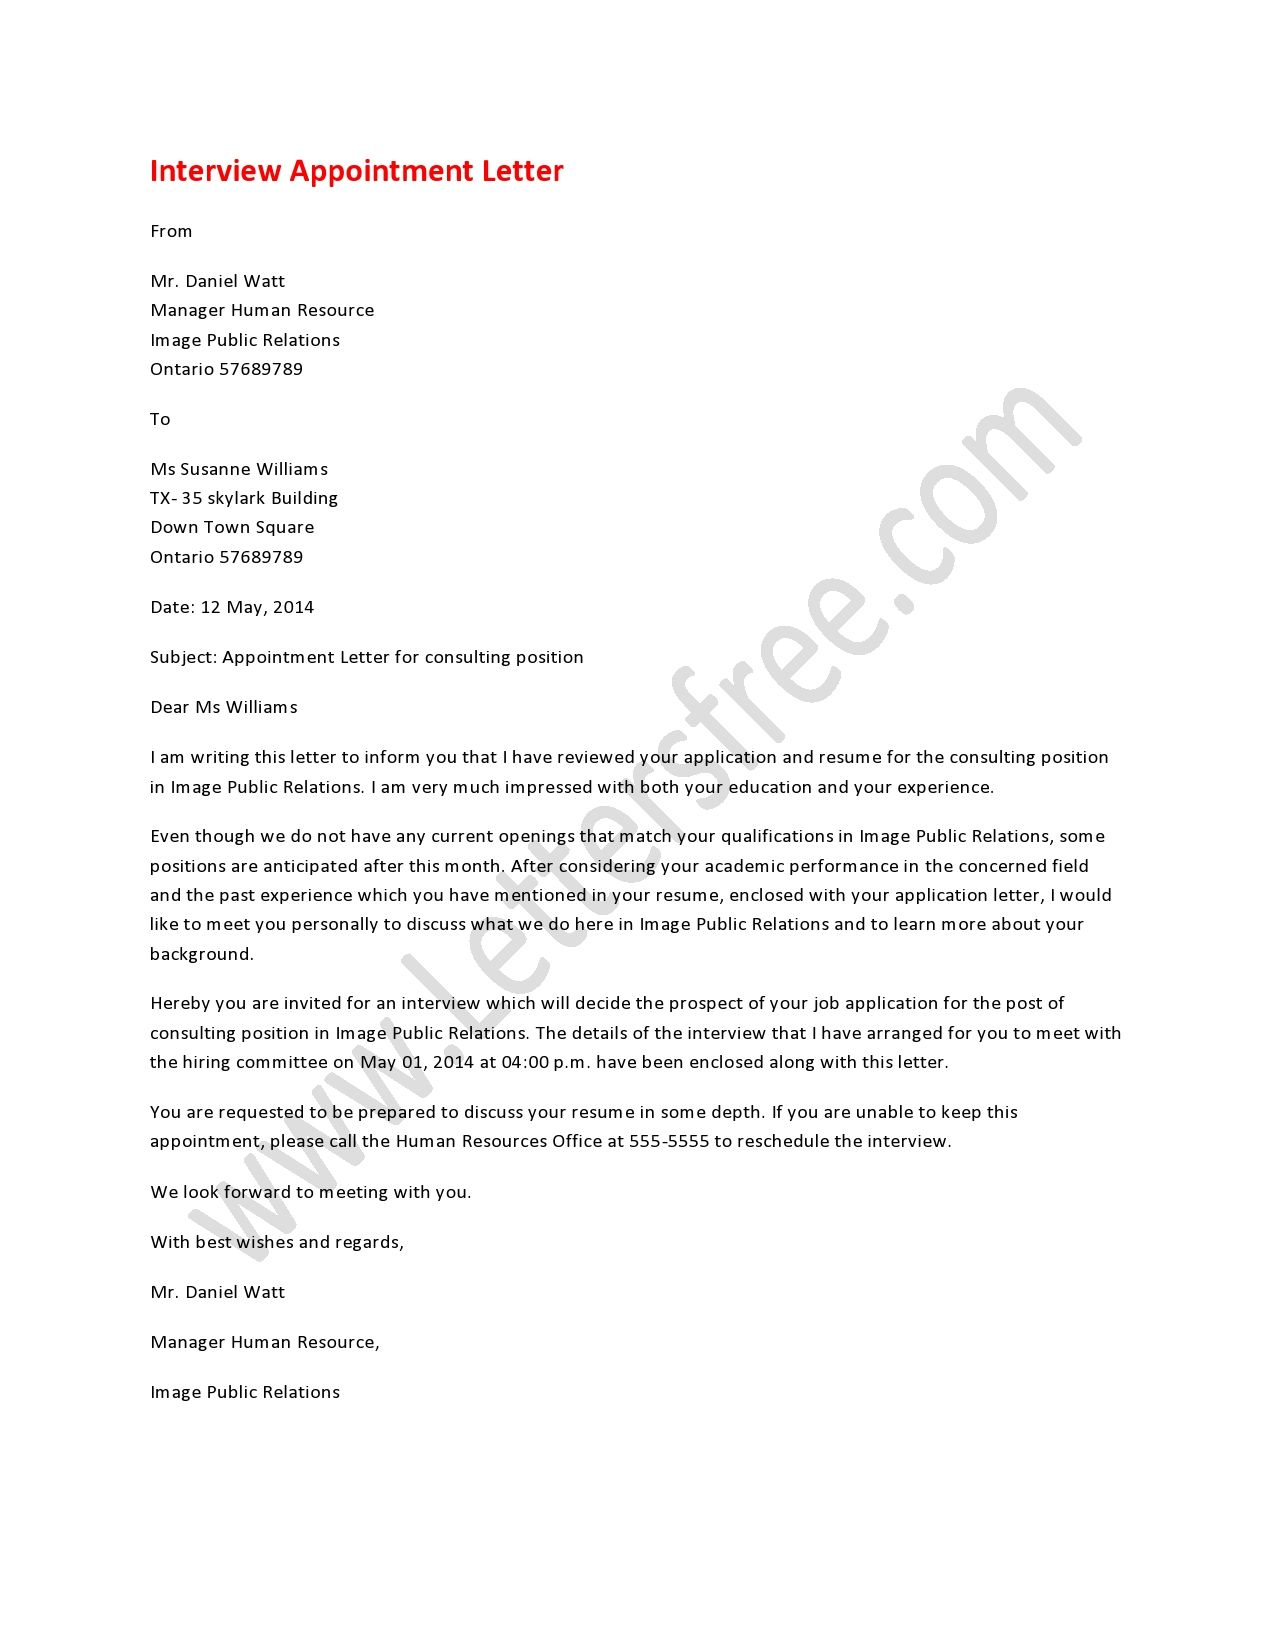 Elegant [ Letter South Africa Best Photos Medical Job Offer Template Employee  Appointment ]   Best Free Home Design Idea U0026 Inspiration